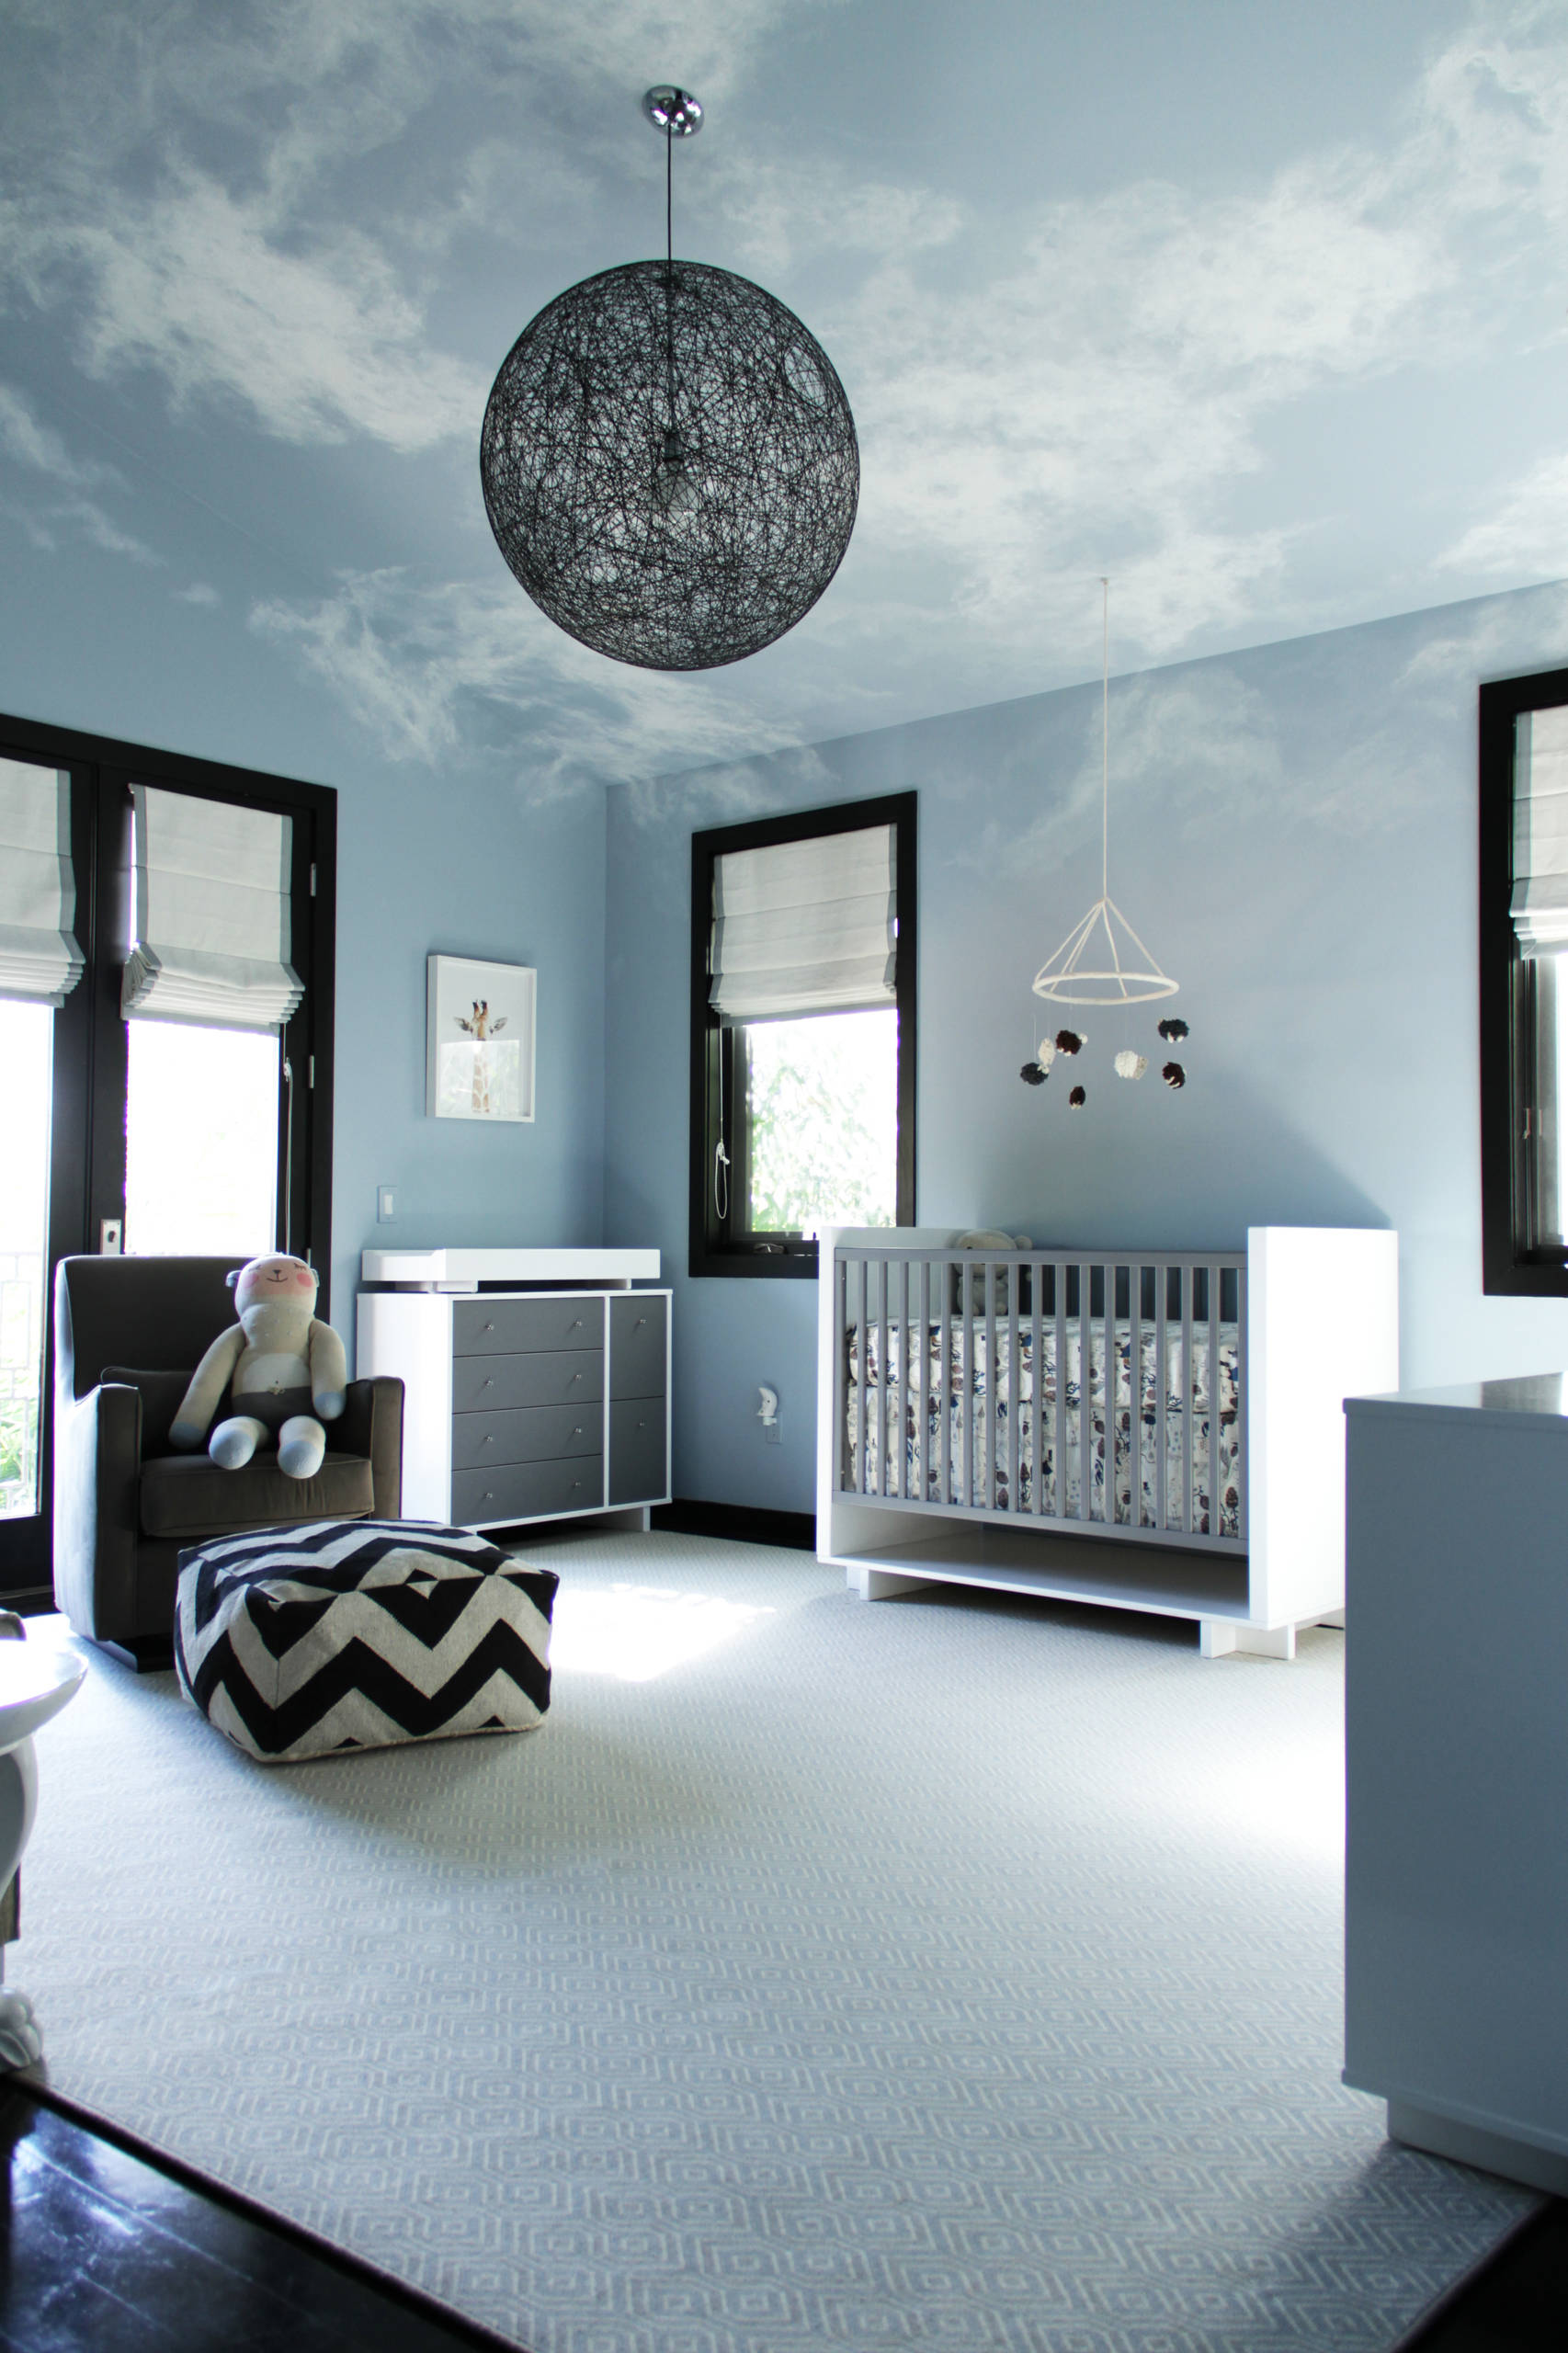 75 Beautiful Nursery Pictures Ideas March 2021 Houzz